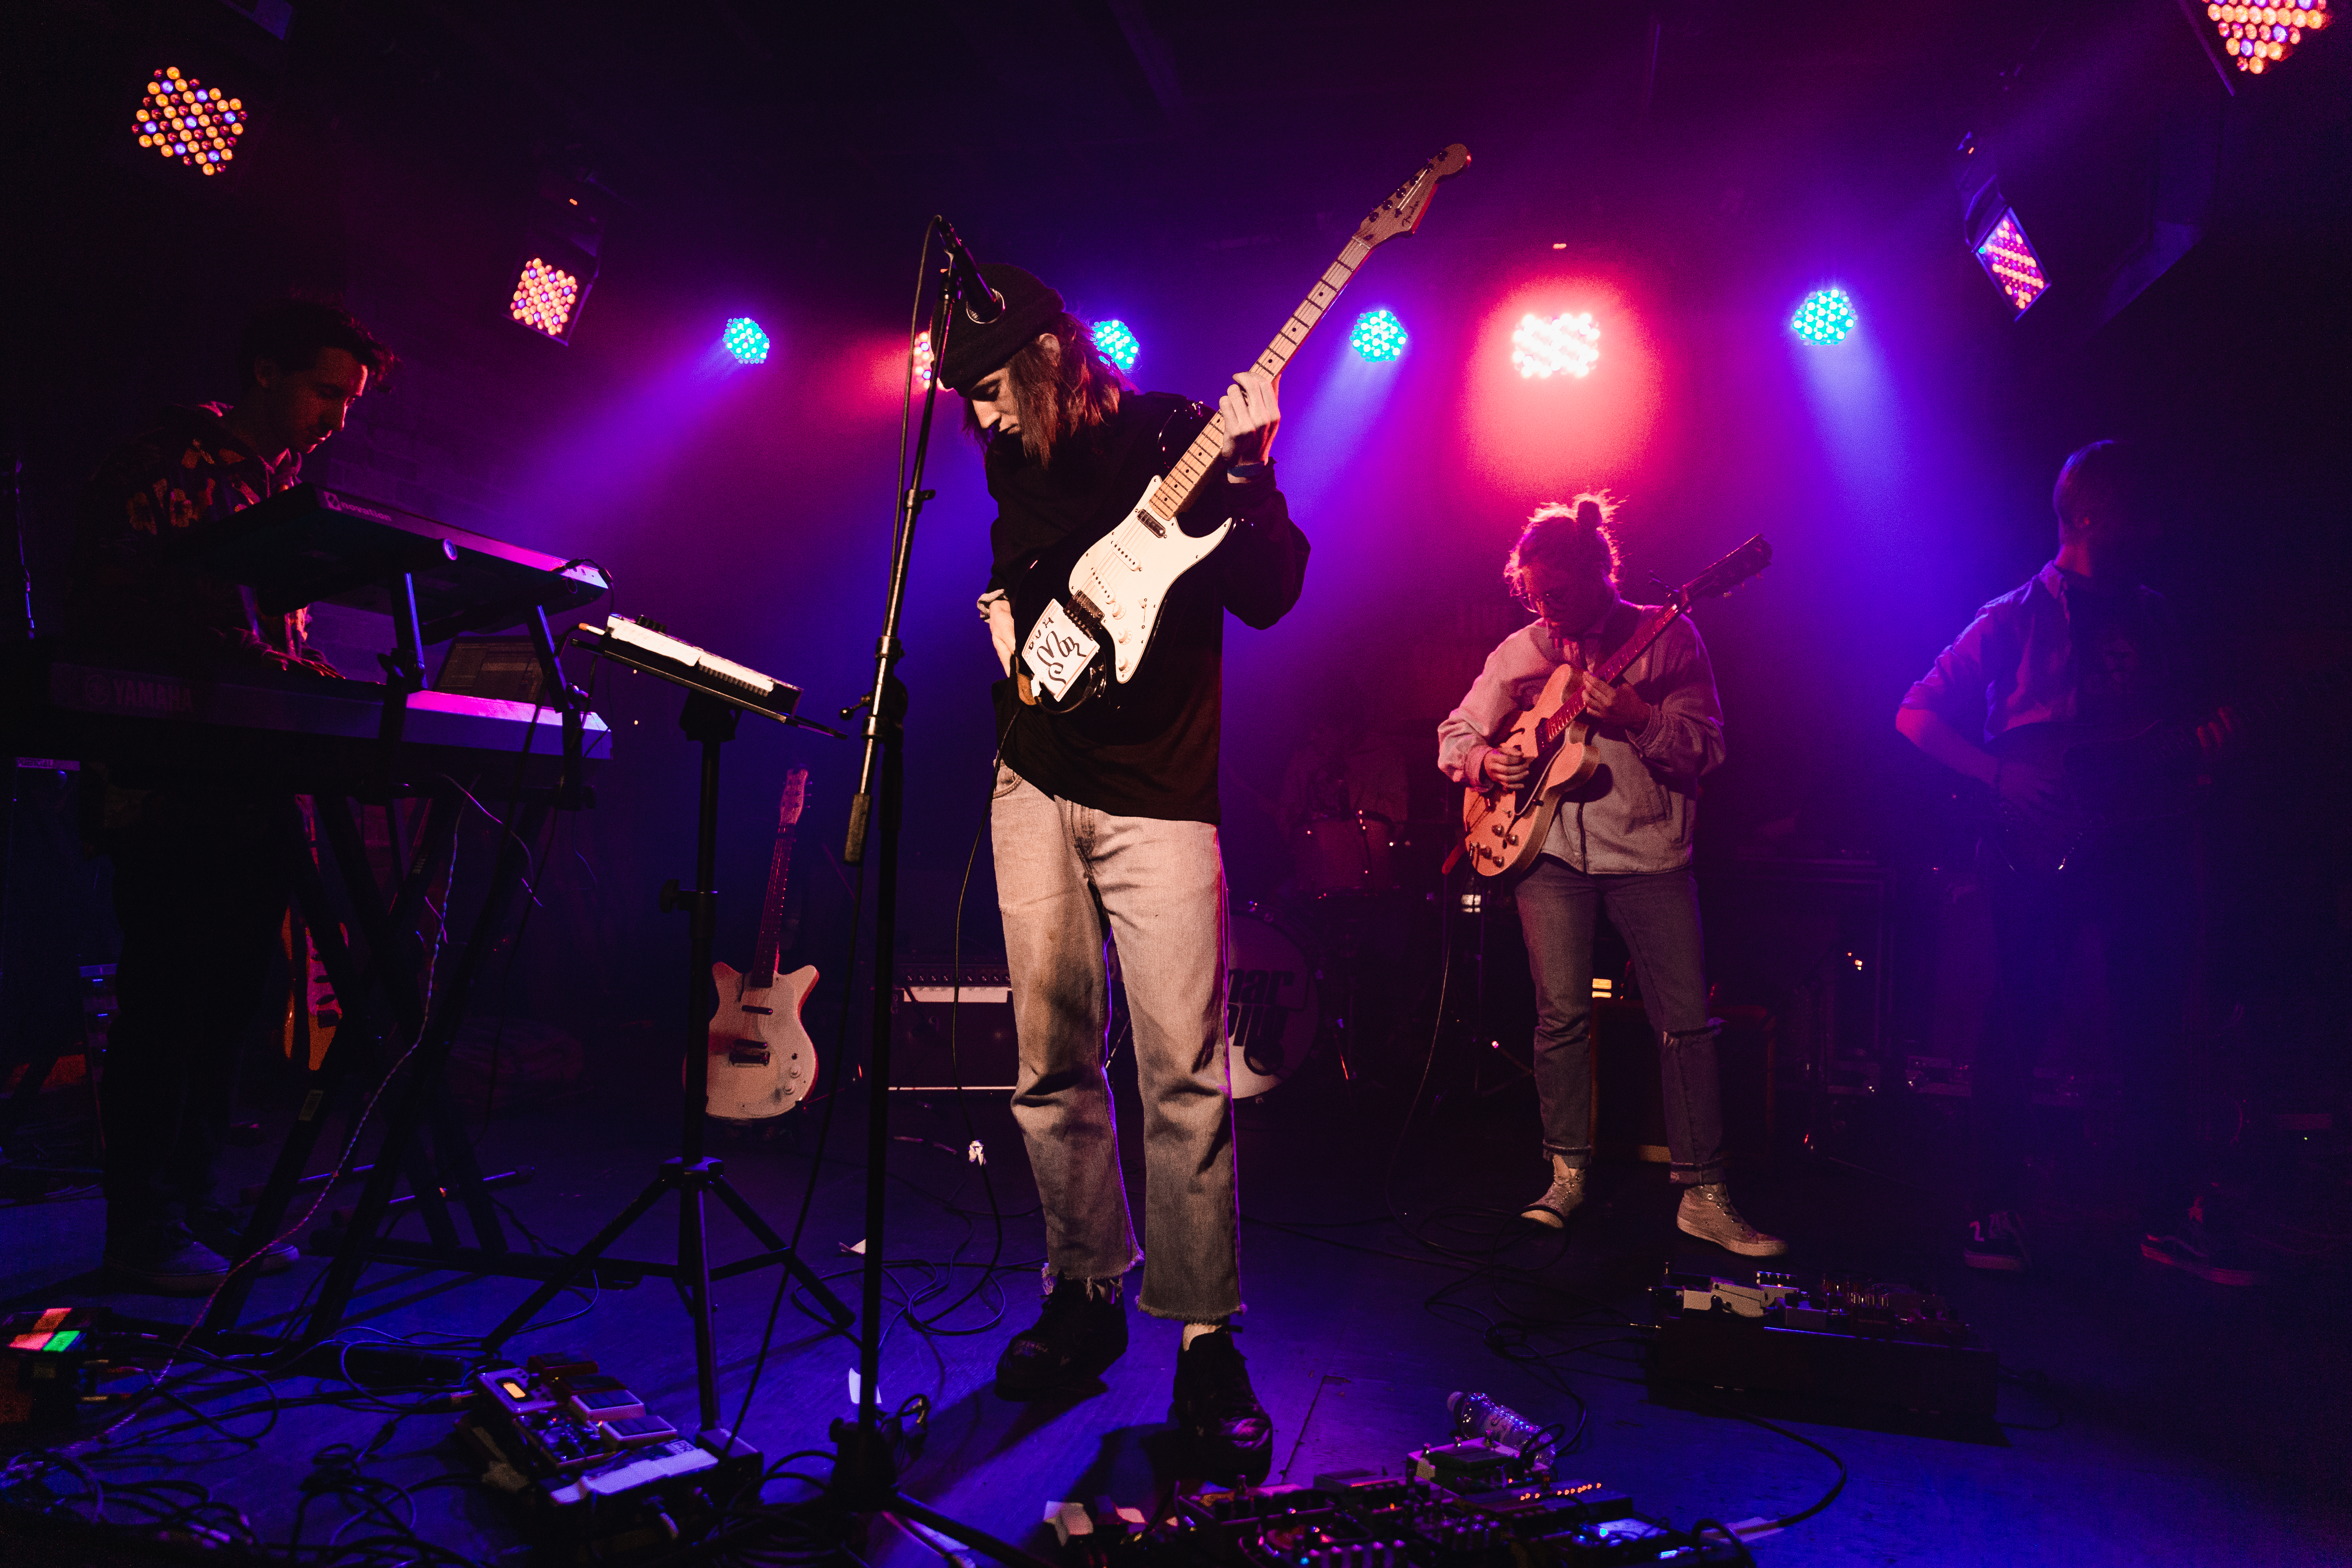 Group of People Performing on Stage Using Musical Instruments